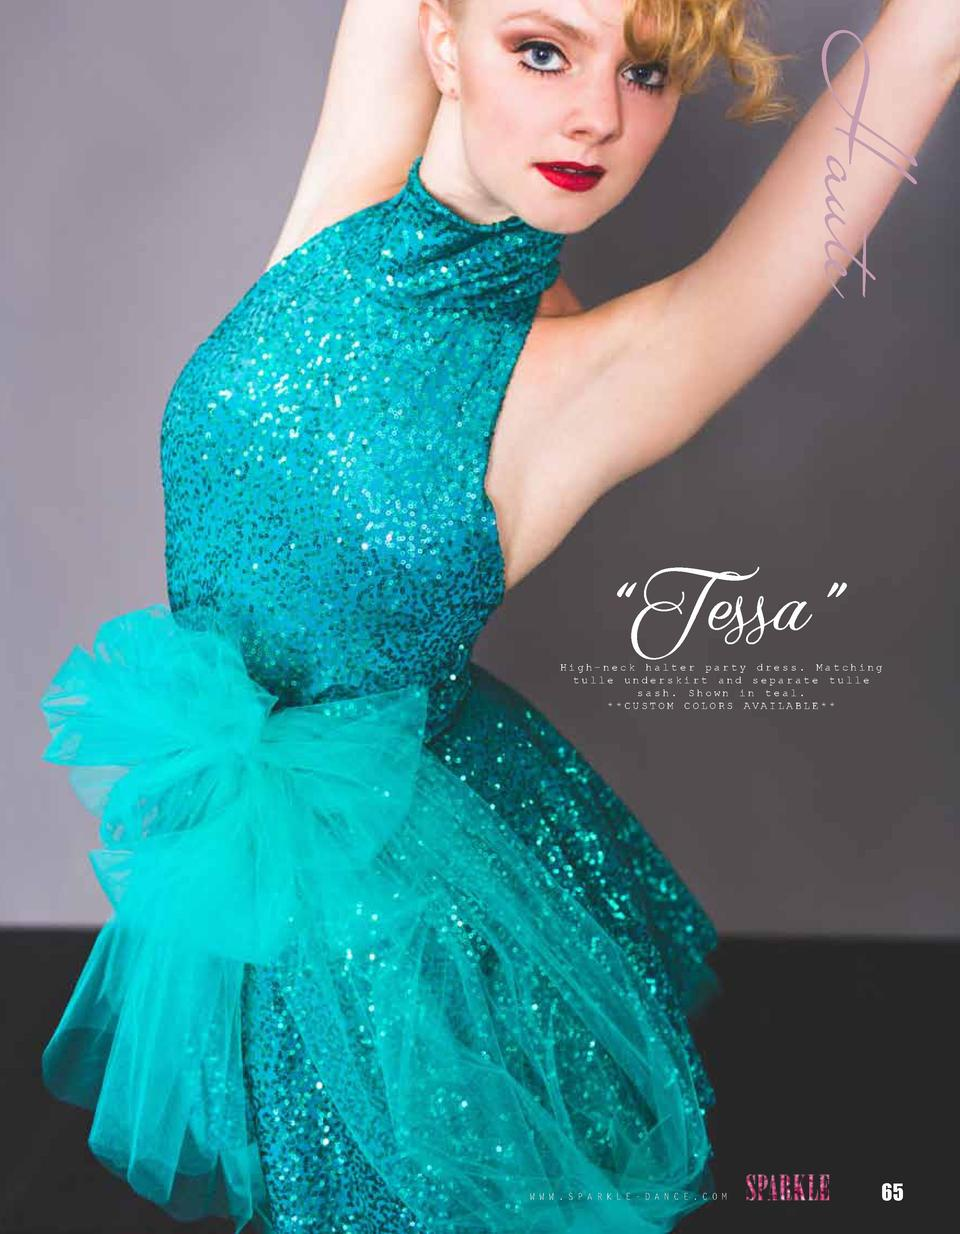 Haute    Tessa     High-neck halter party dress. Matching tulle underskirt and separate tulle sash. Shown in teal.   CUSTO...